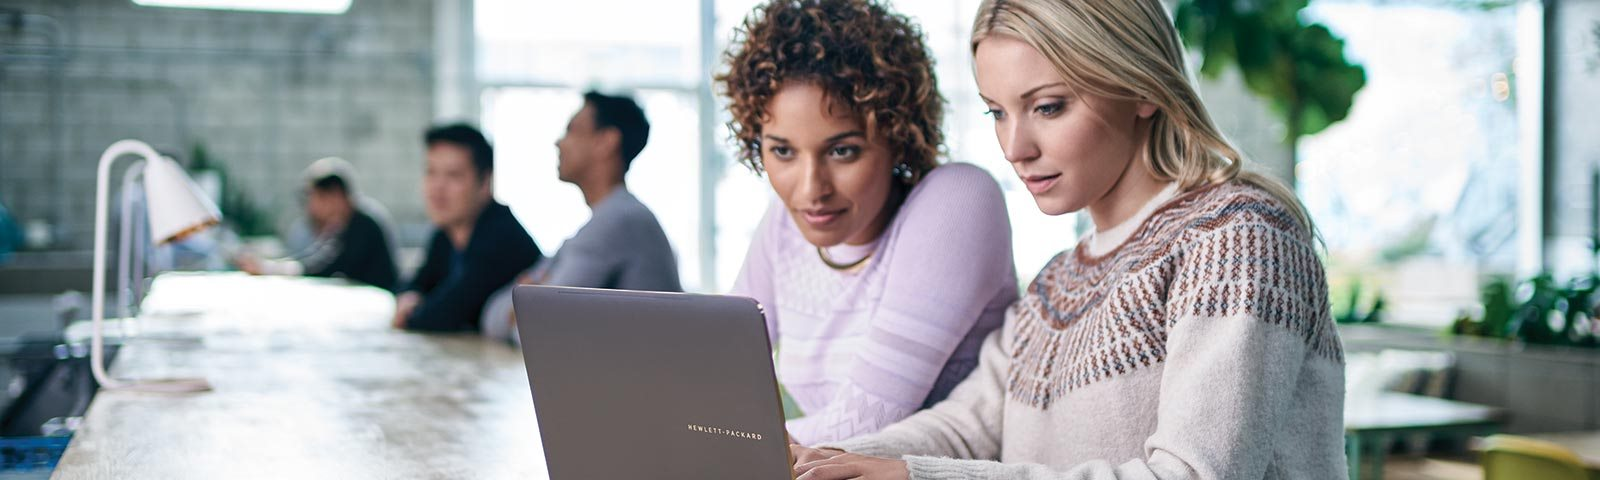 Two female colleagues working on laptop computer